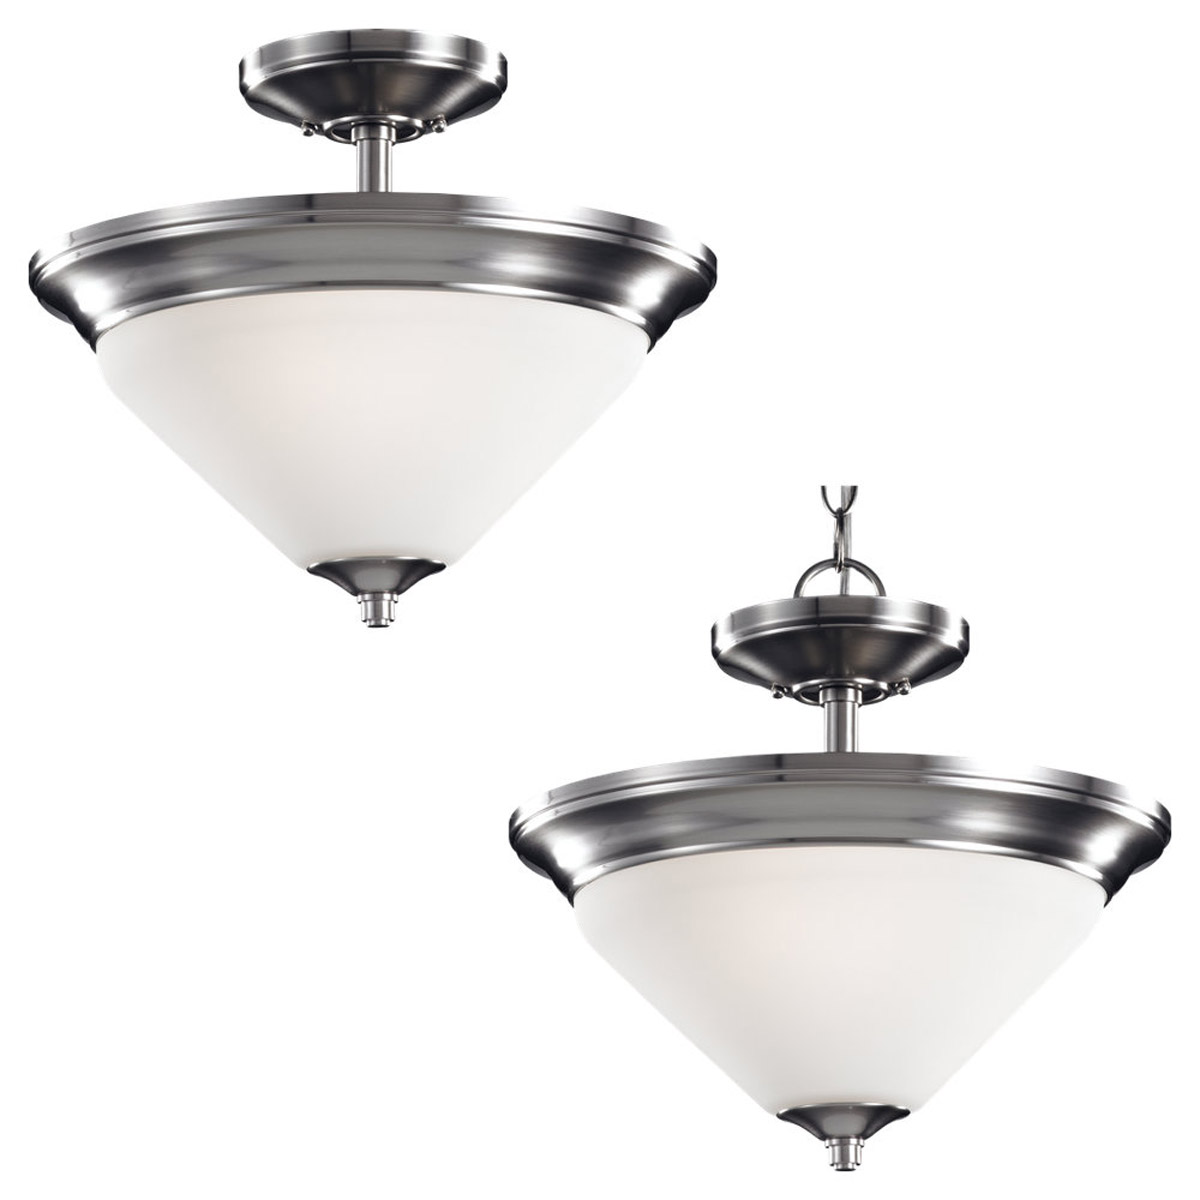 Sea Gull Lighting Belair 2 Light Semi-Flush / Pendant in Brushed Nickel 77790-962 photo